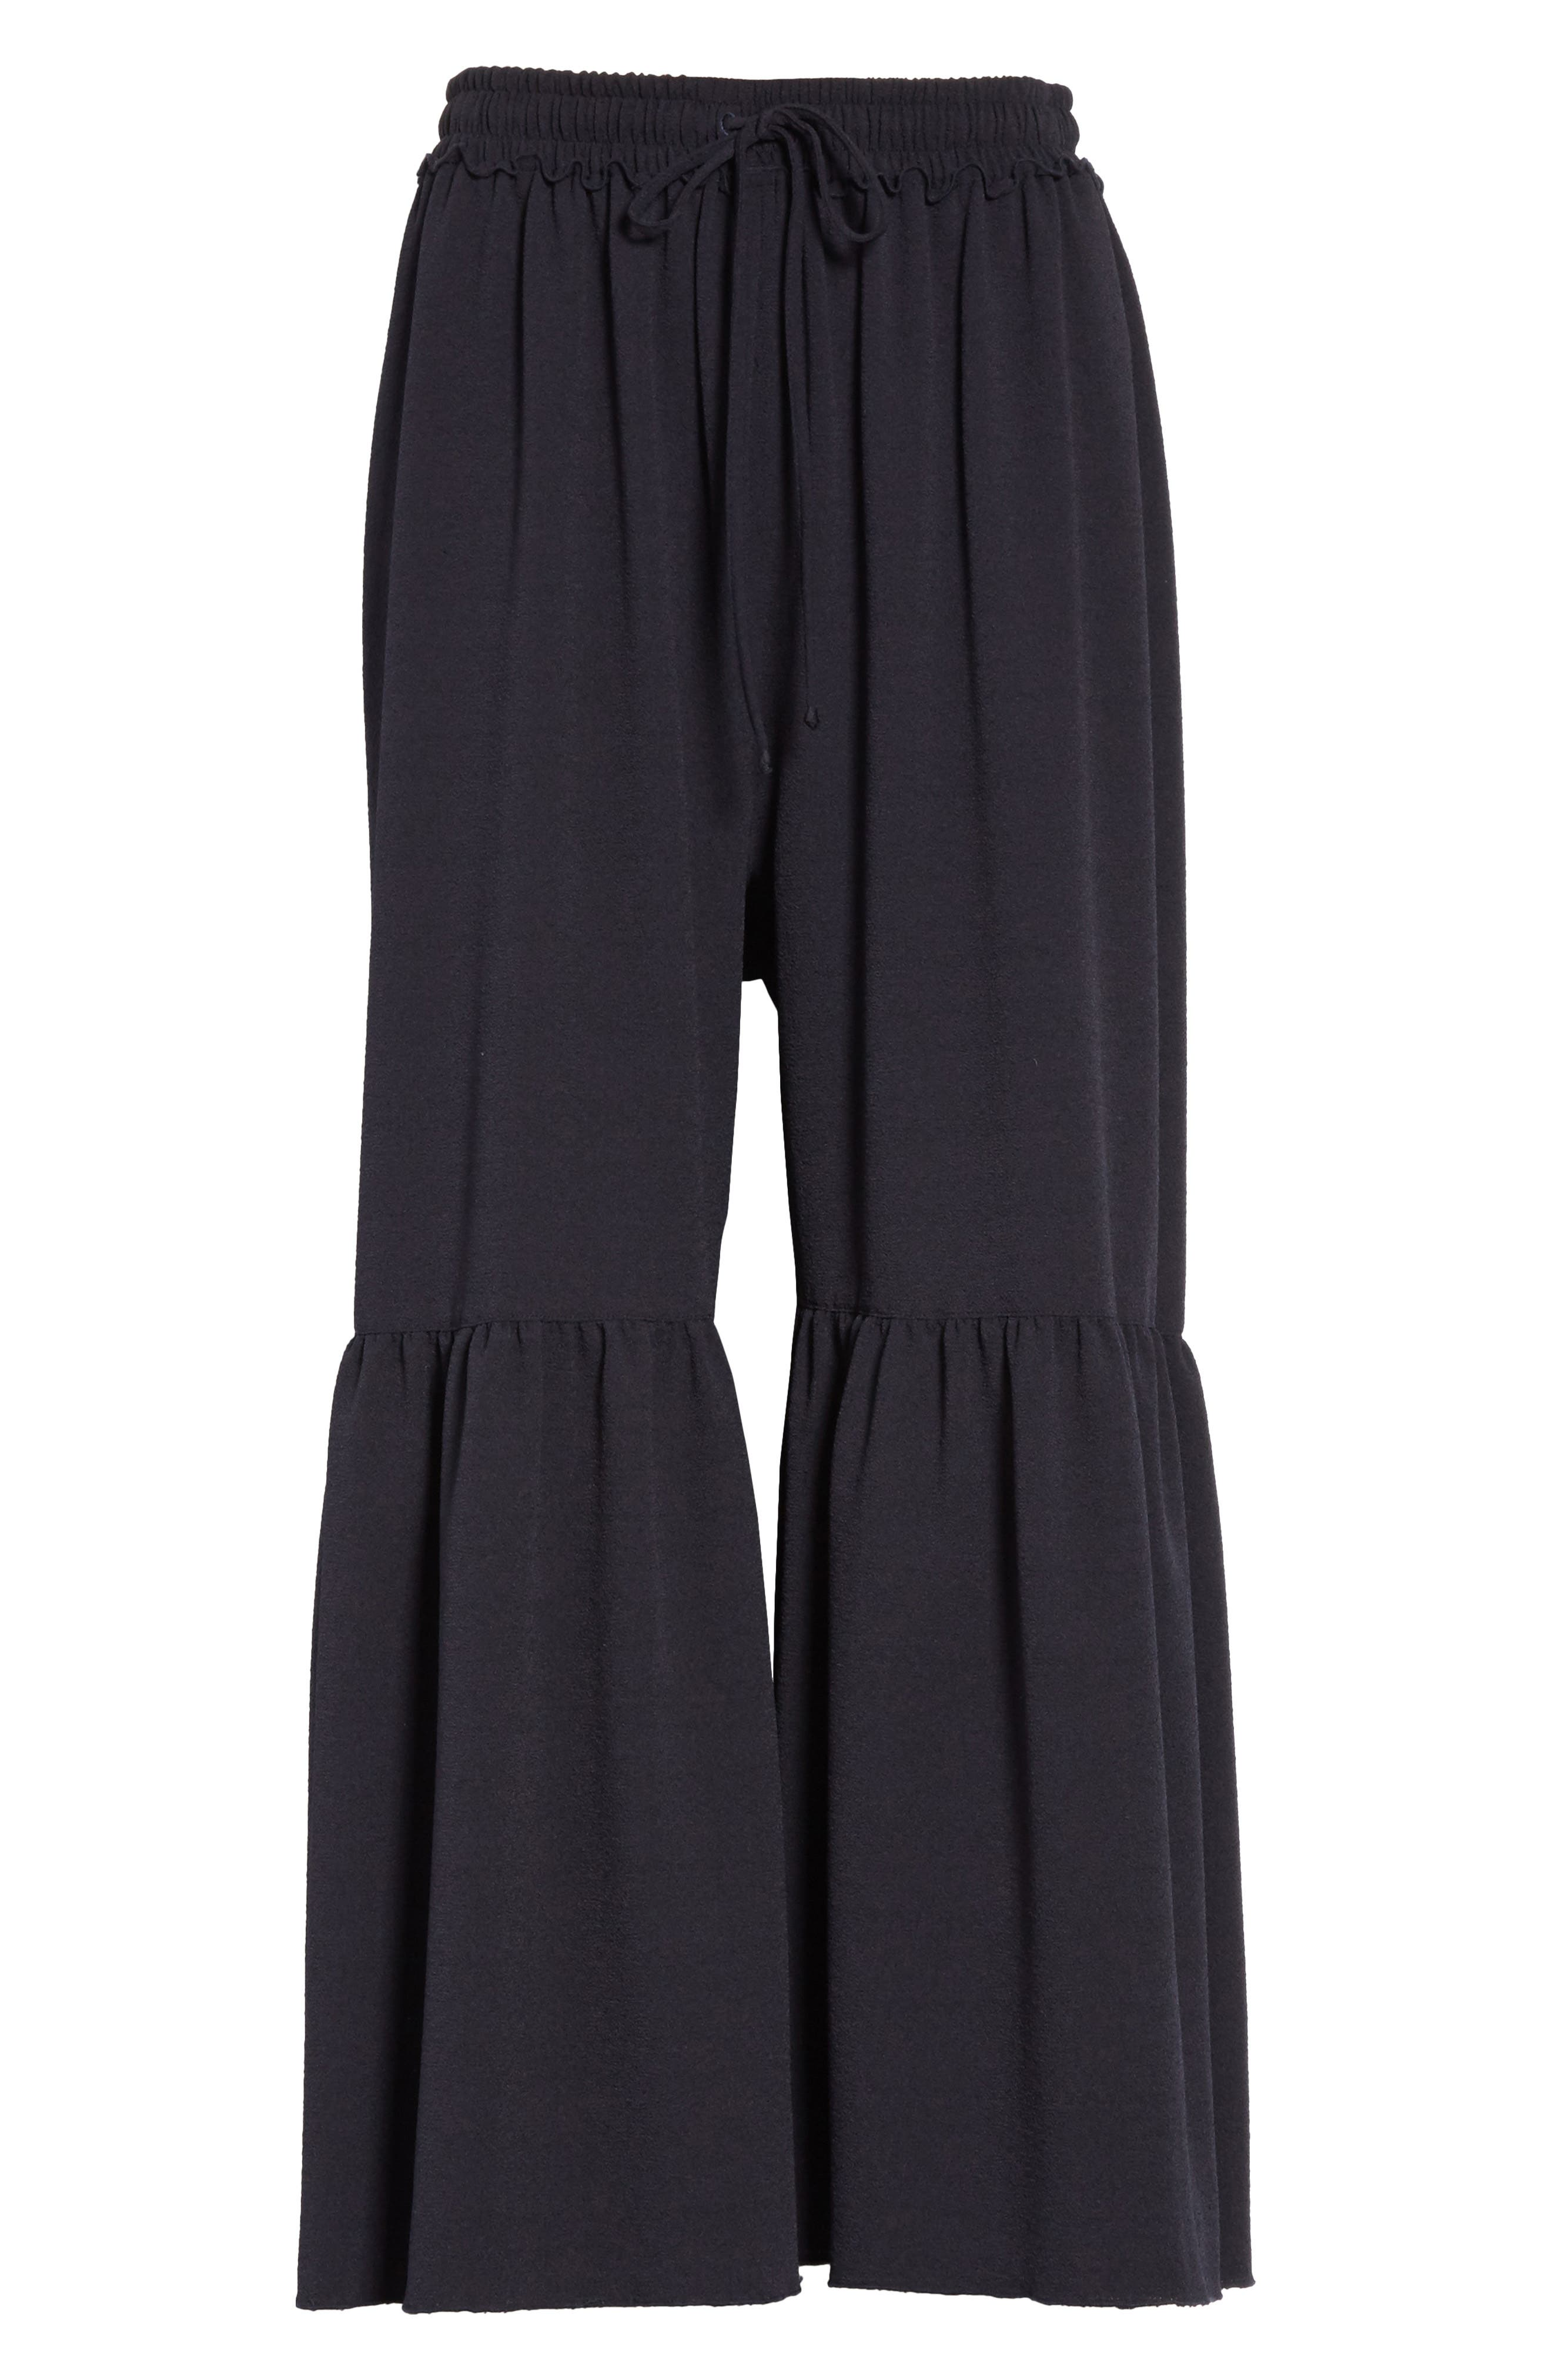 Moroccan Flare Pants,                             Alternate thumbnail 6, color,                             Navy